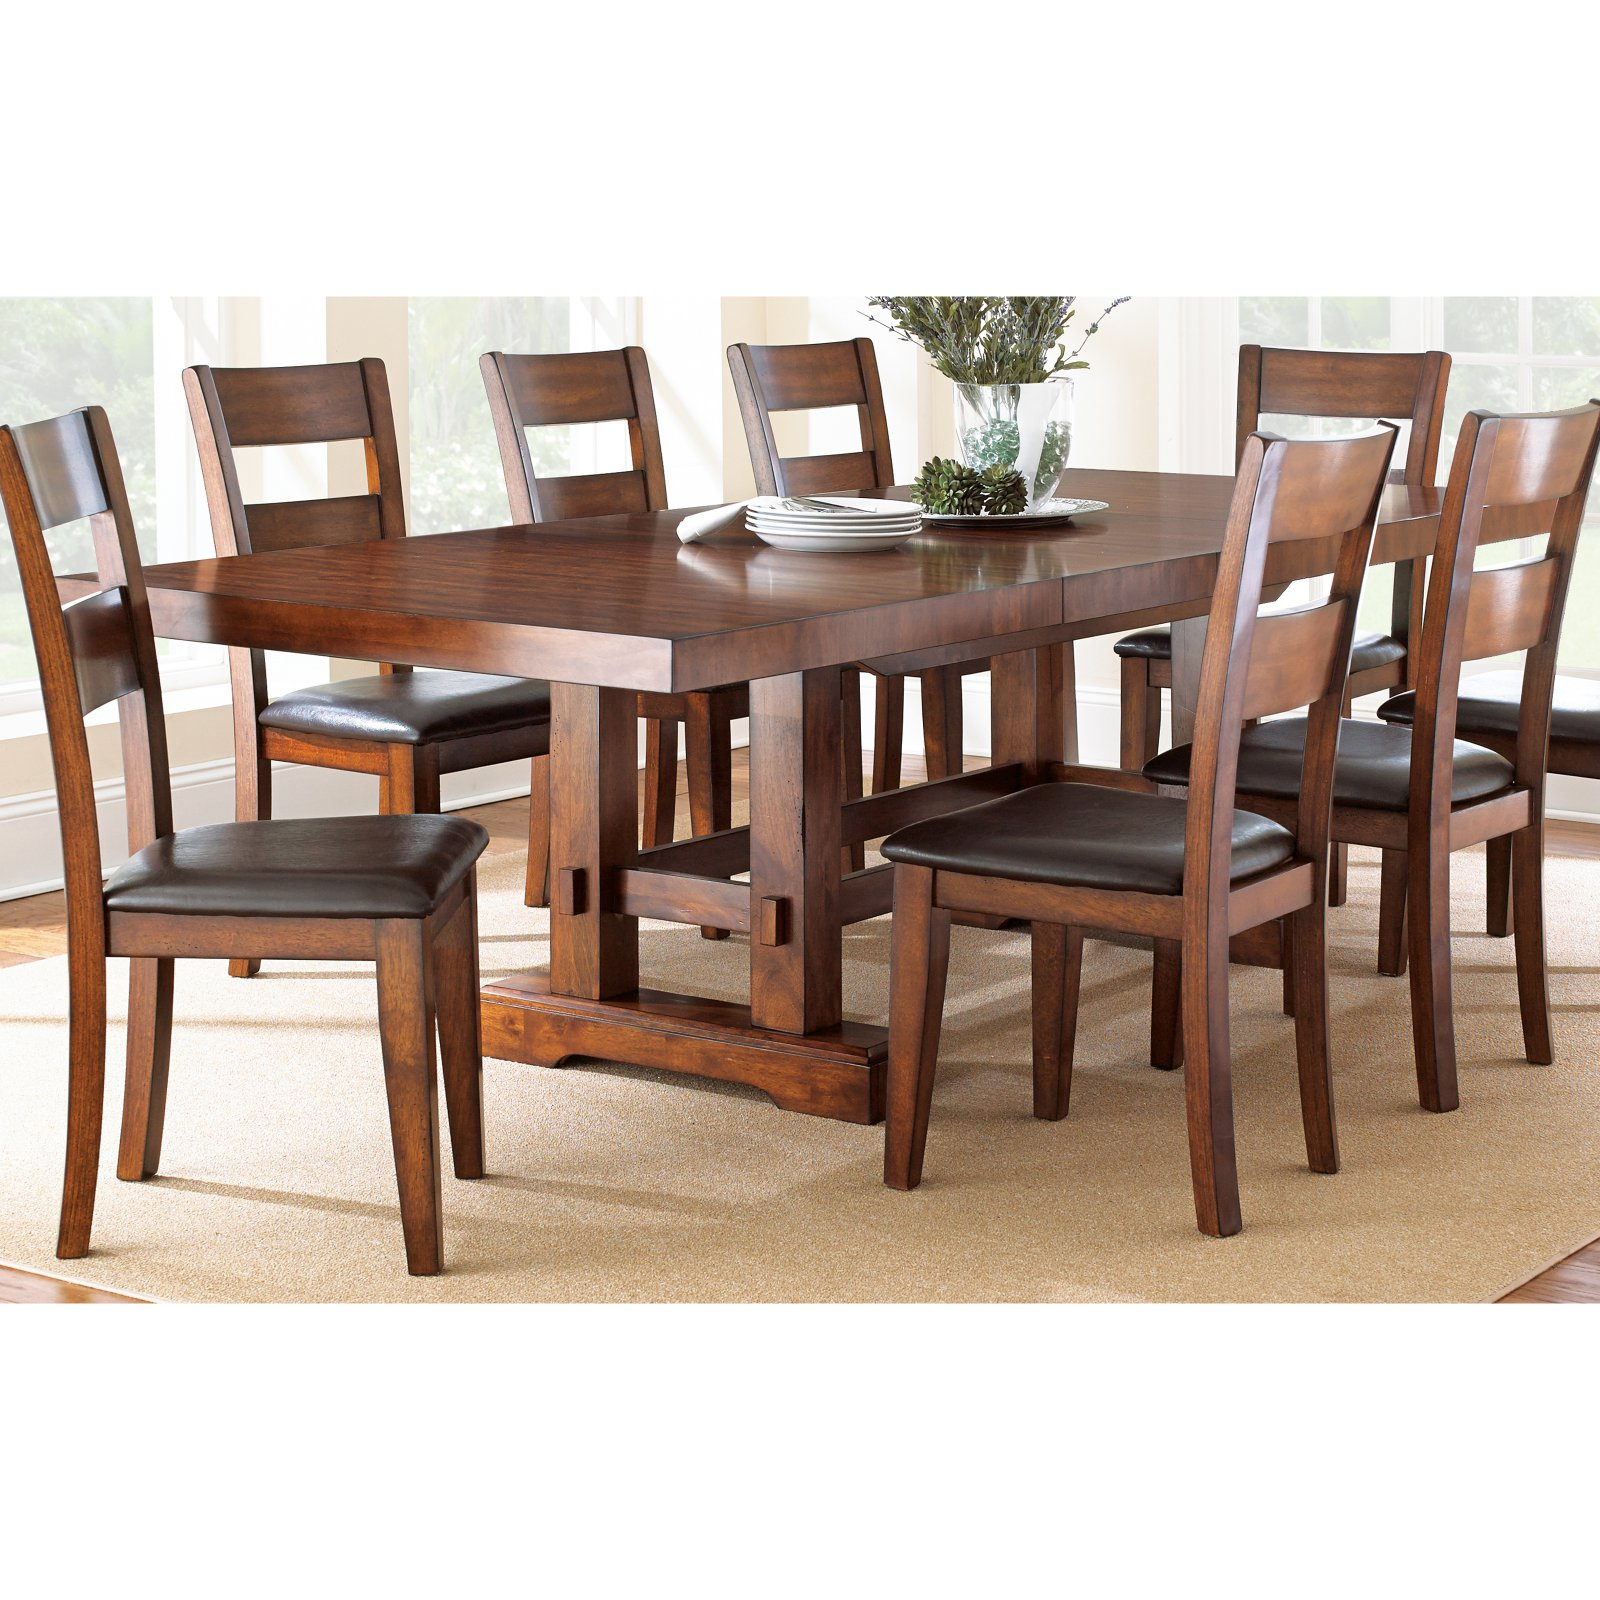 Steve Silver Zappa Dining Table - Medium Cherry